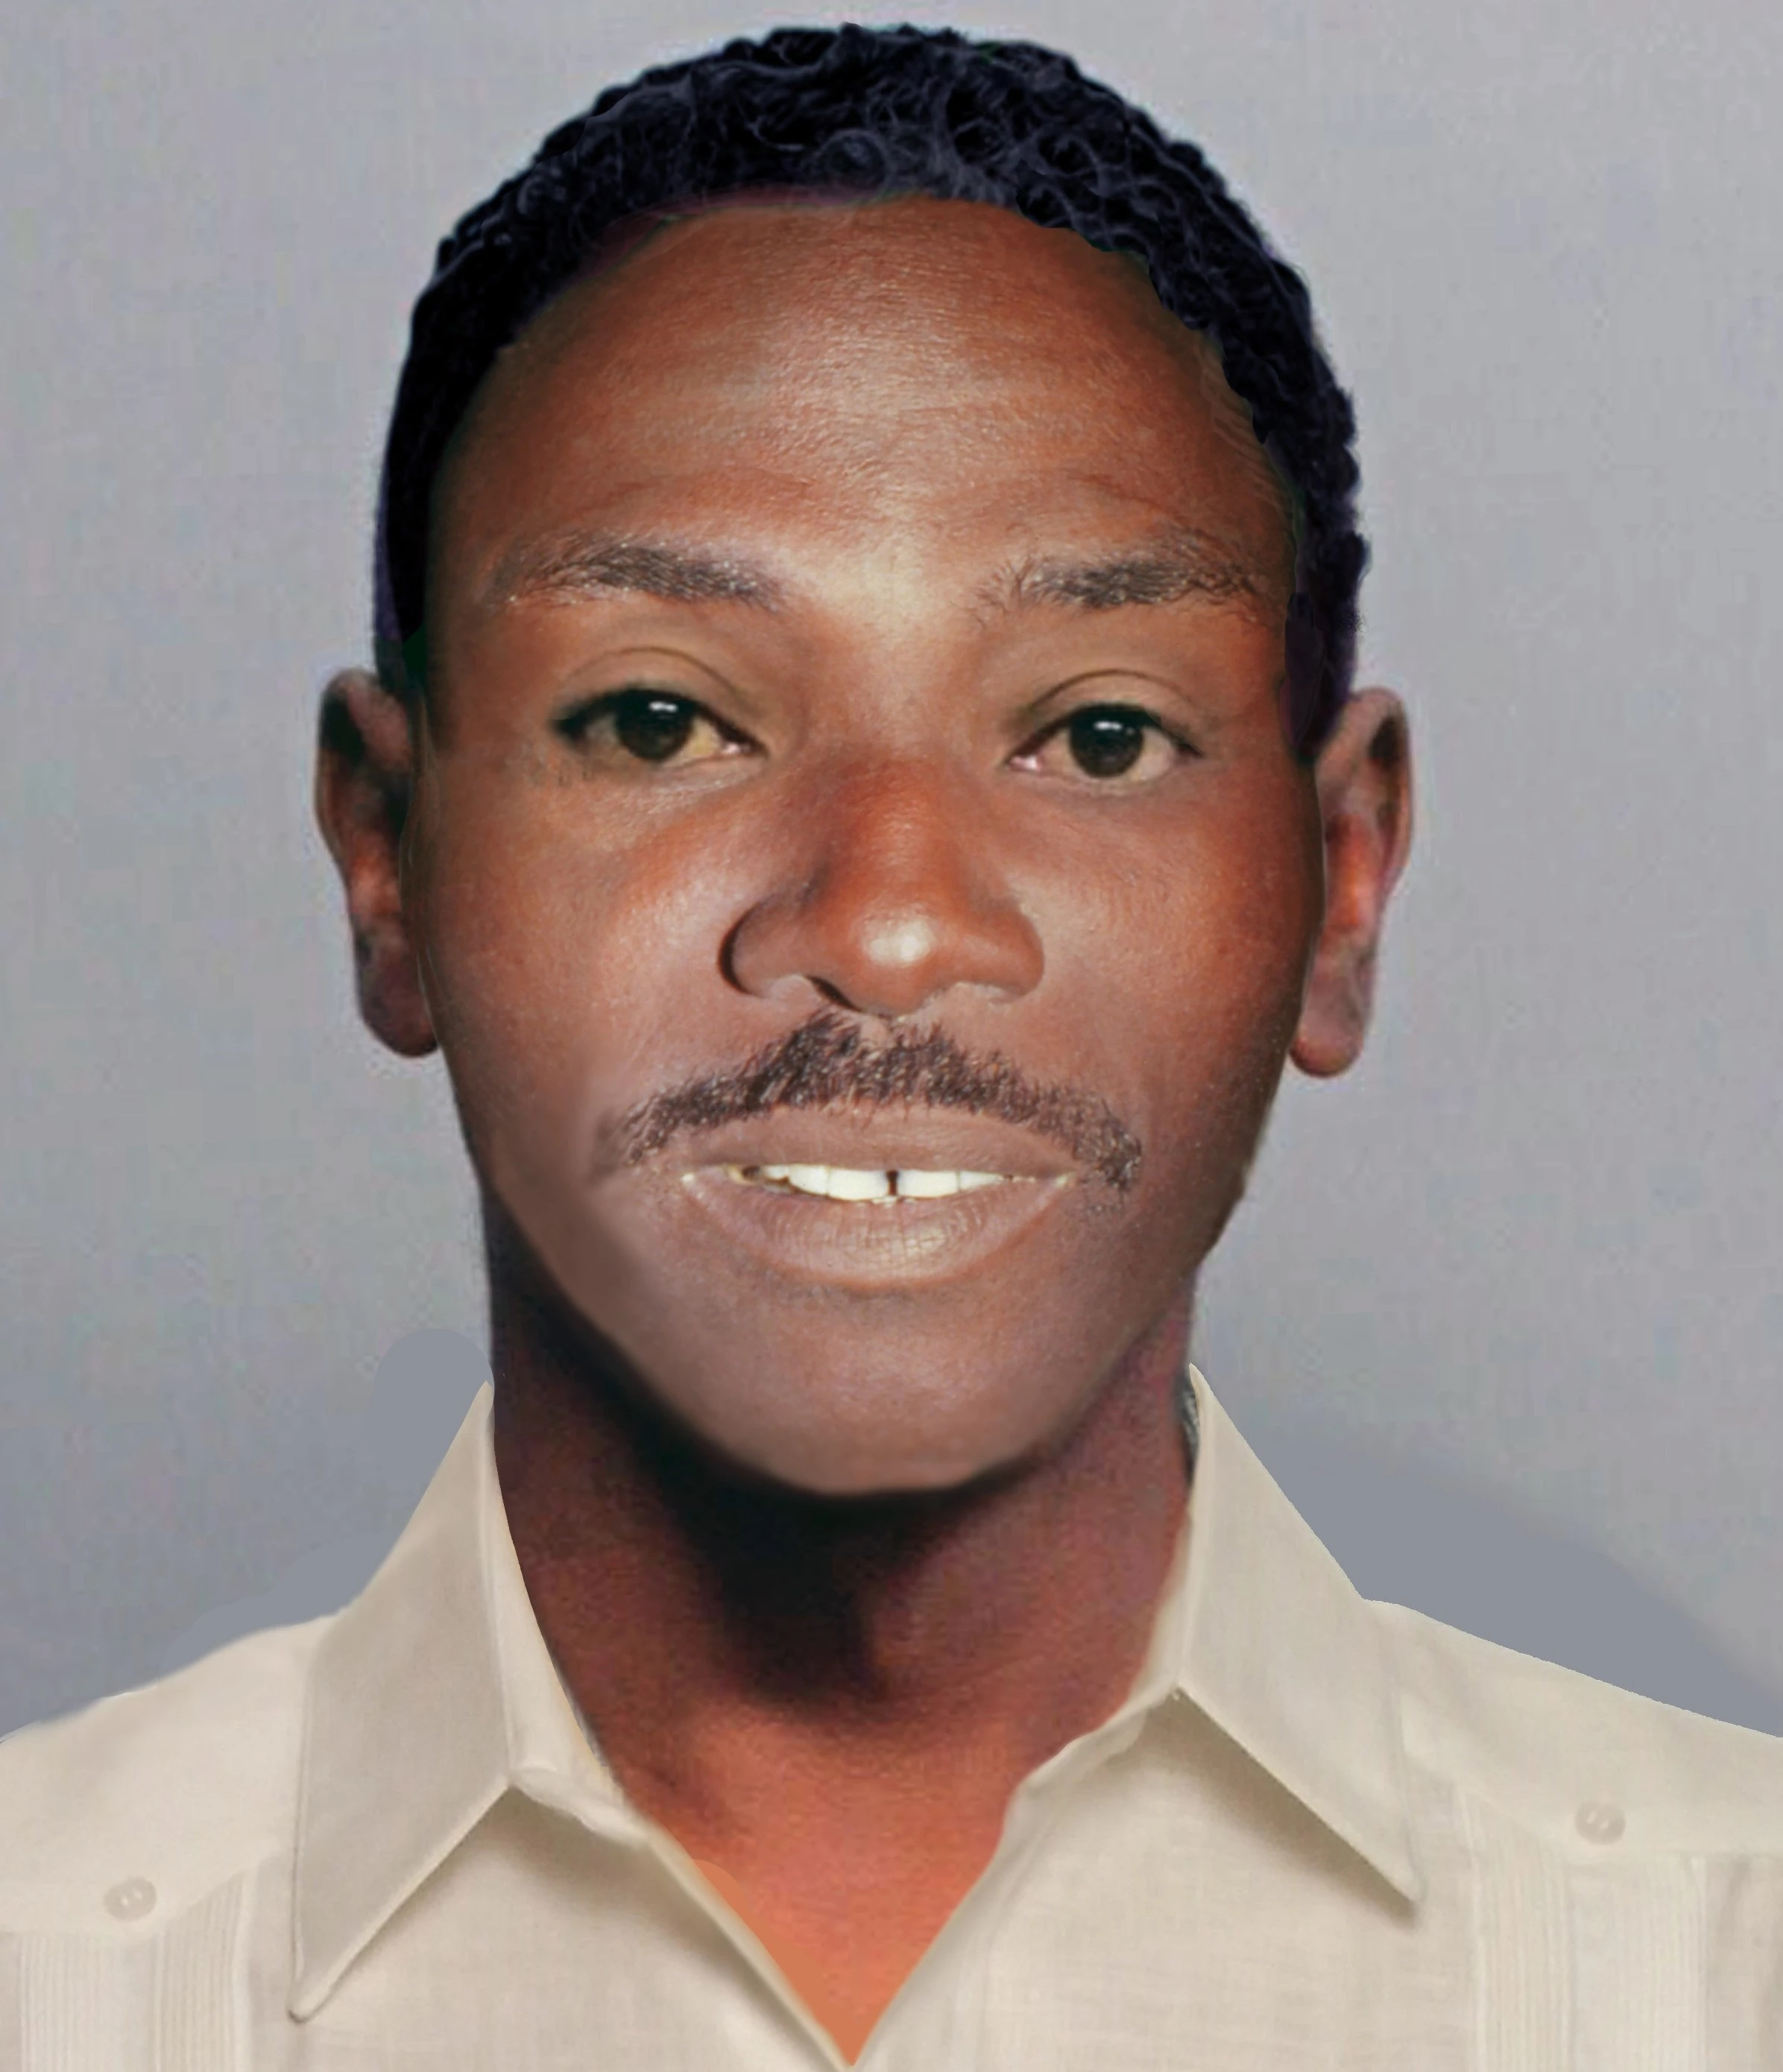 Miami-Dade County John Doe (March 30, 1980)